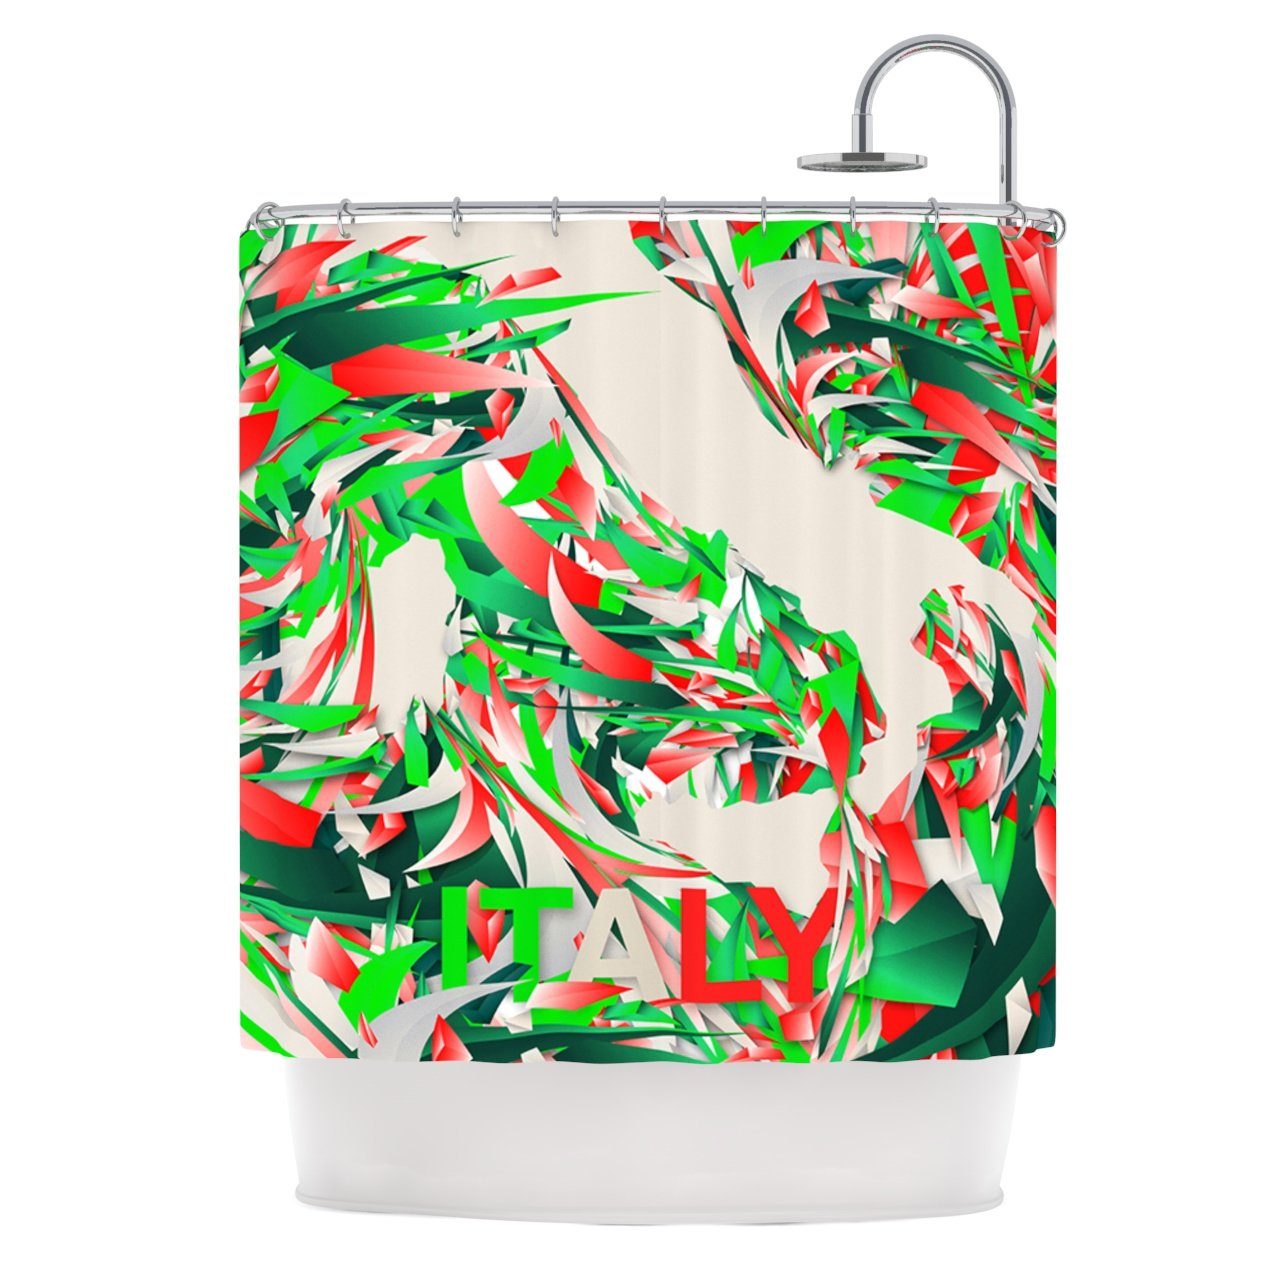 Kess InHouse Danny Ivan ''Italy'' Shower Curtain, 69 by 70-Inch, World Cup